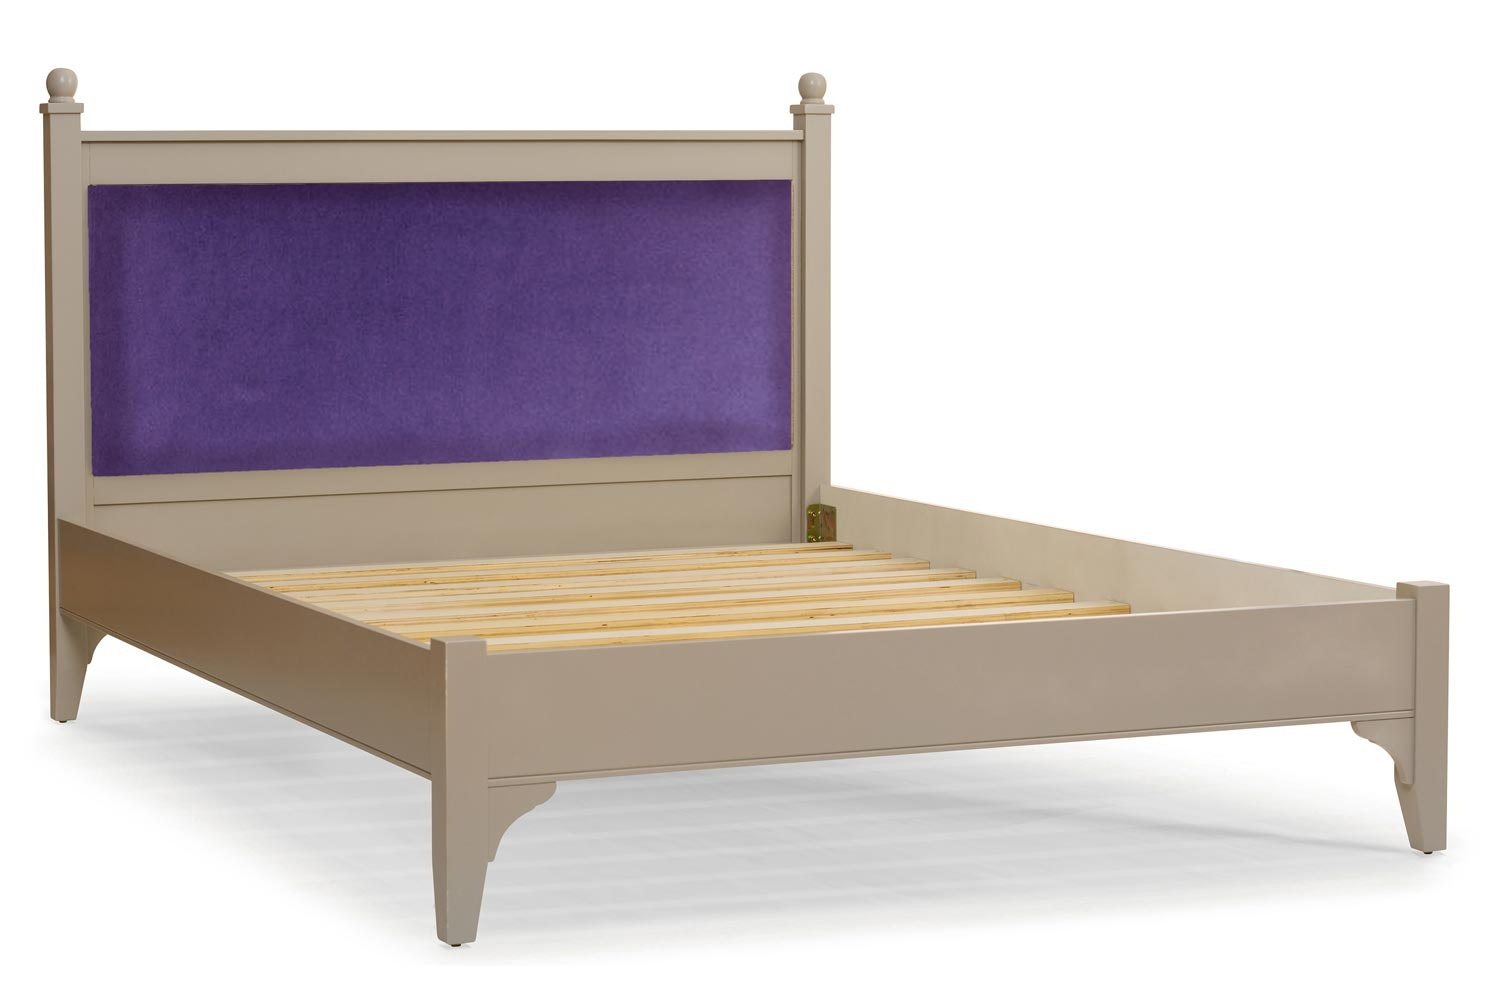 Lynwood Bed Frame | 6ft | Velvet Purple&Old Bone